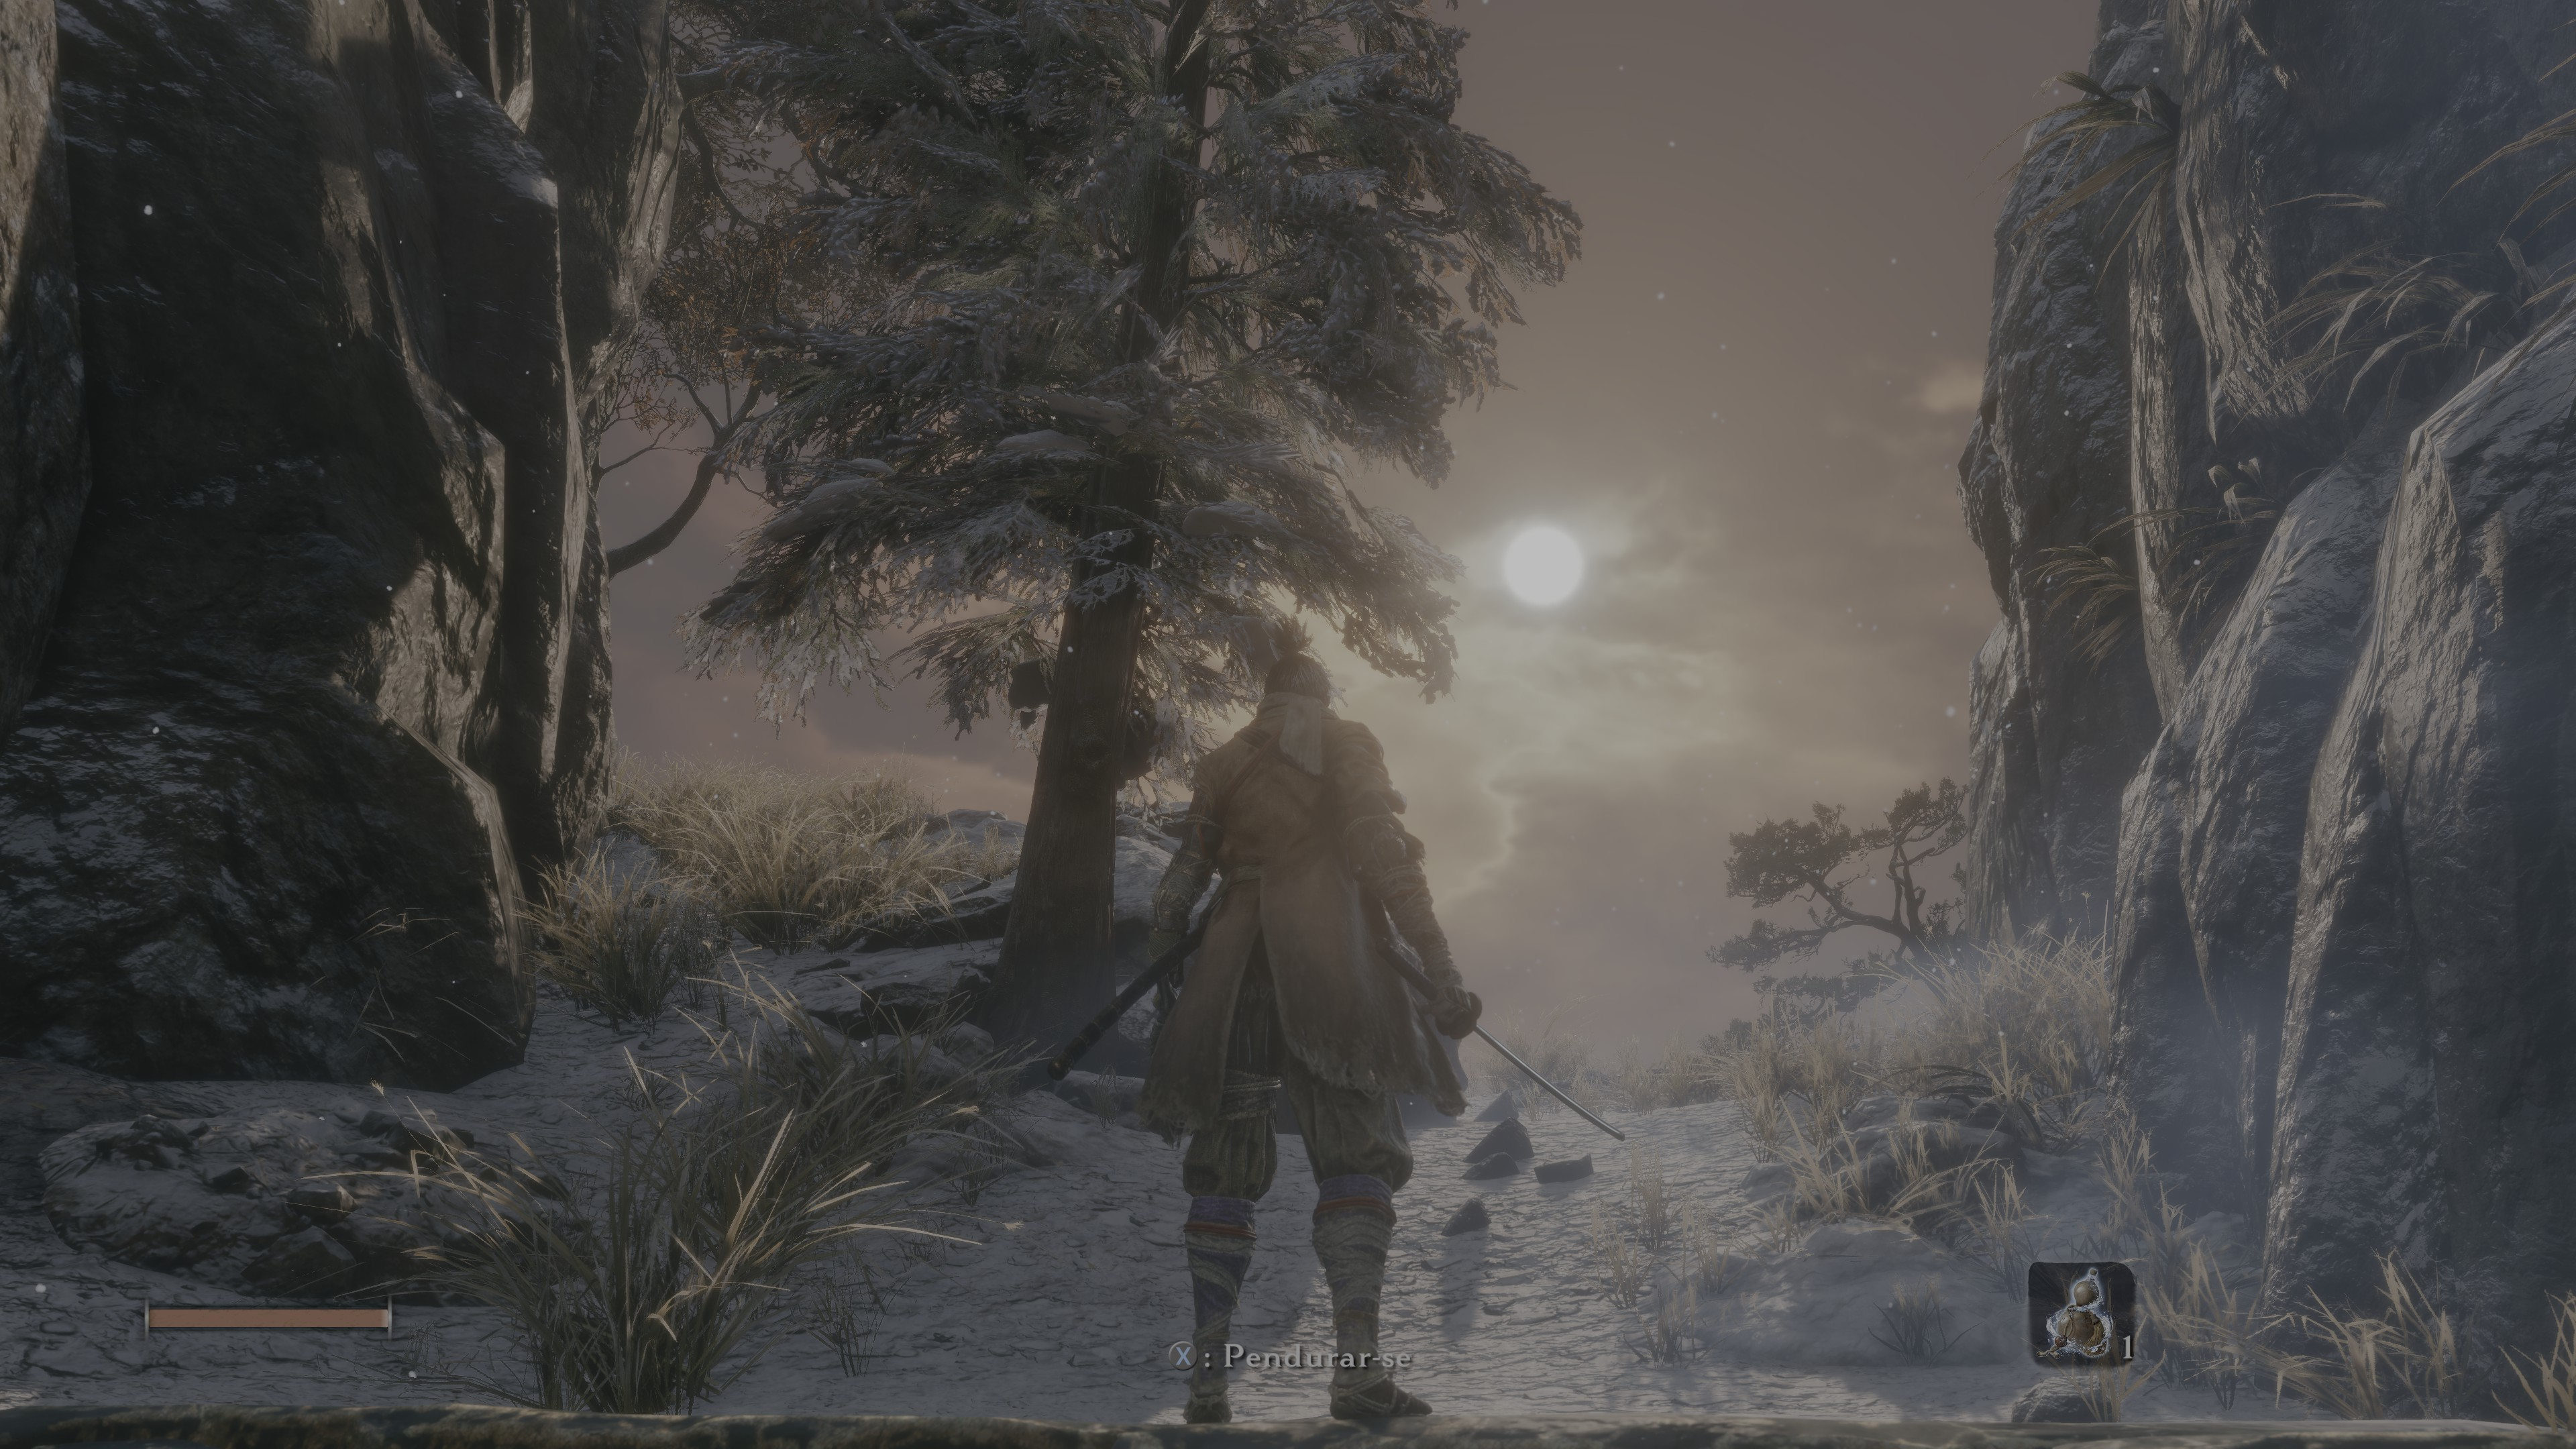 Sekiro: Shadows Die Twice [PC PS4 XONE] BCD99E2A0E3E98B086505BBABD0CD1E9A7314E32